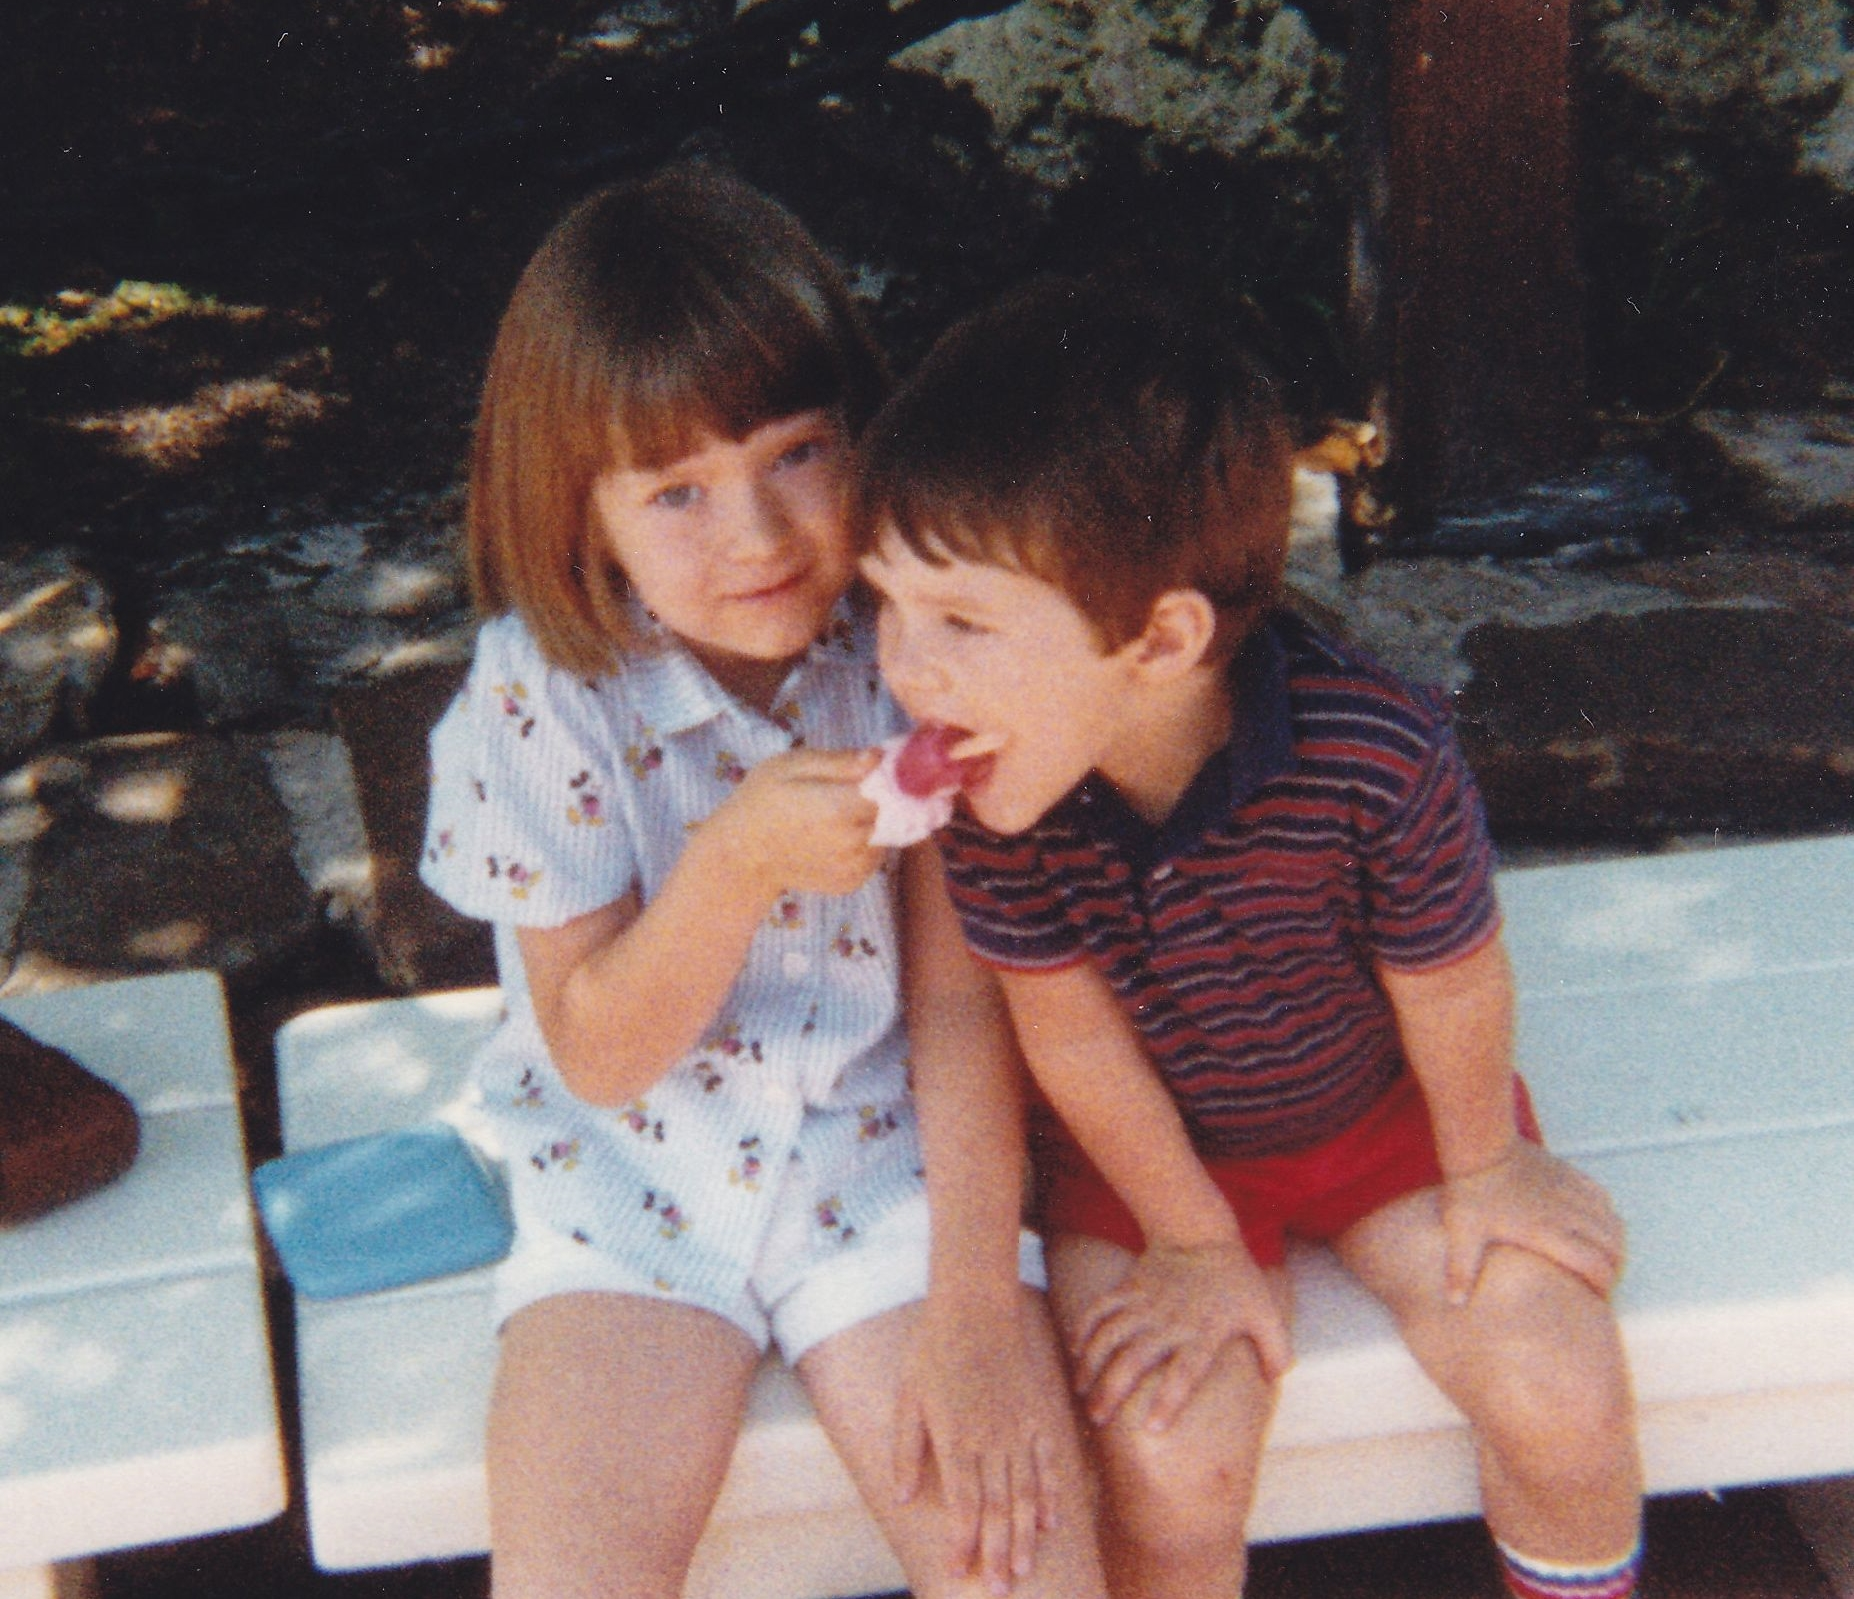 My love of popsicles began at an early age.